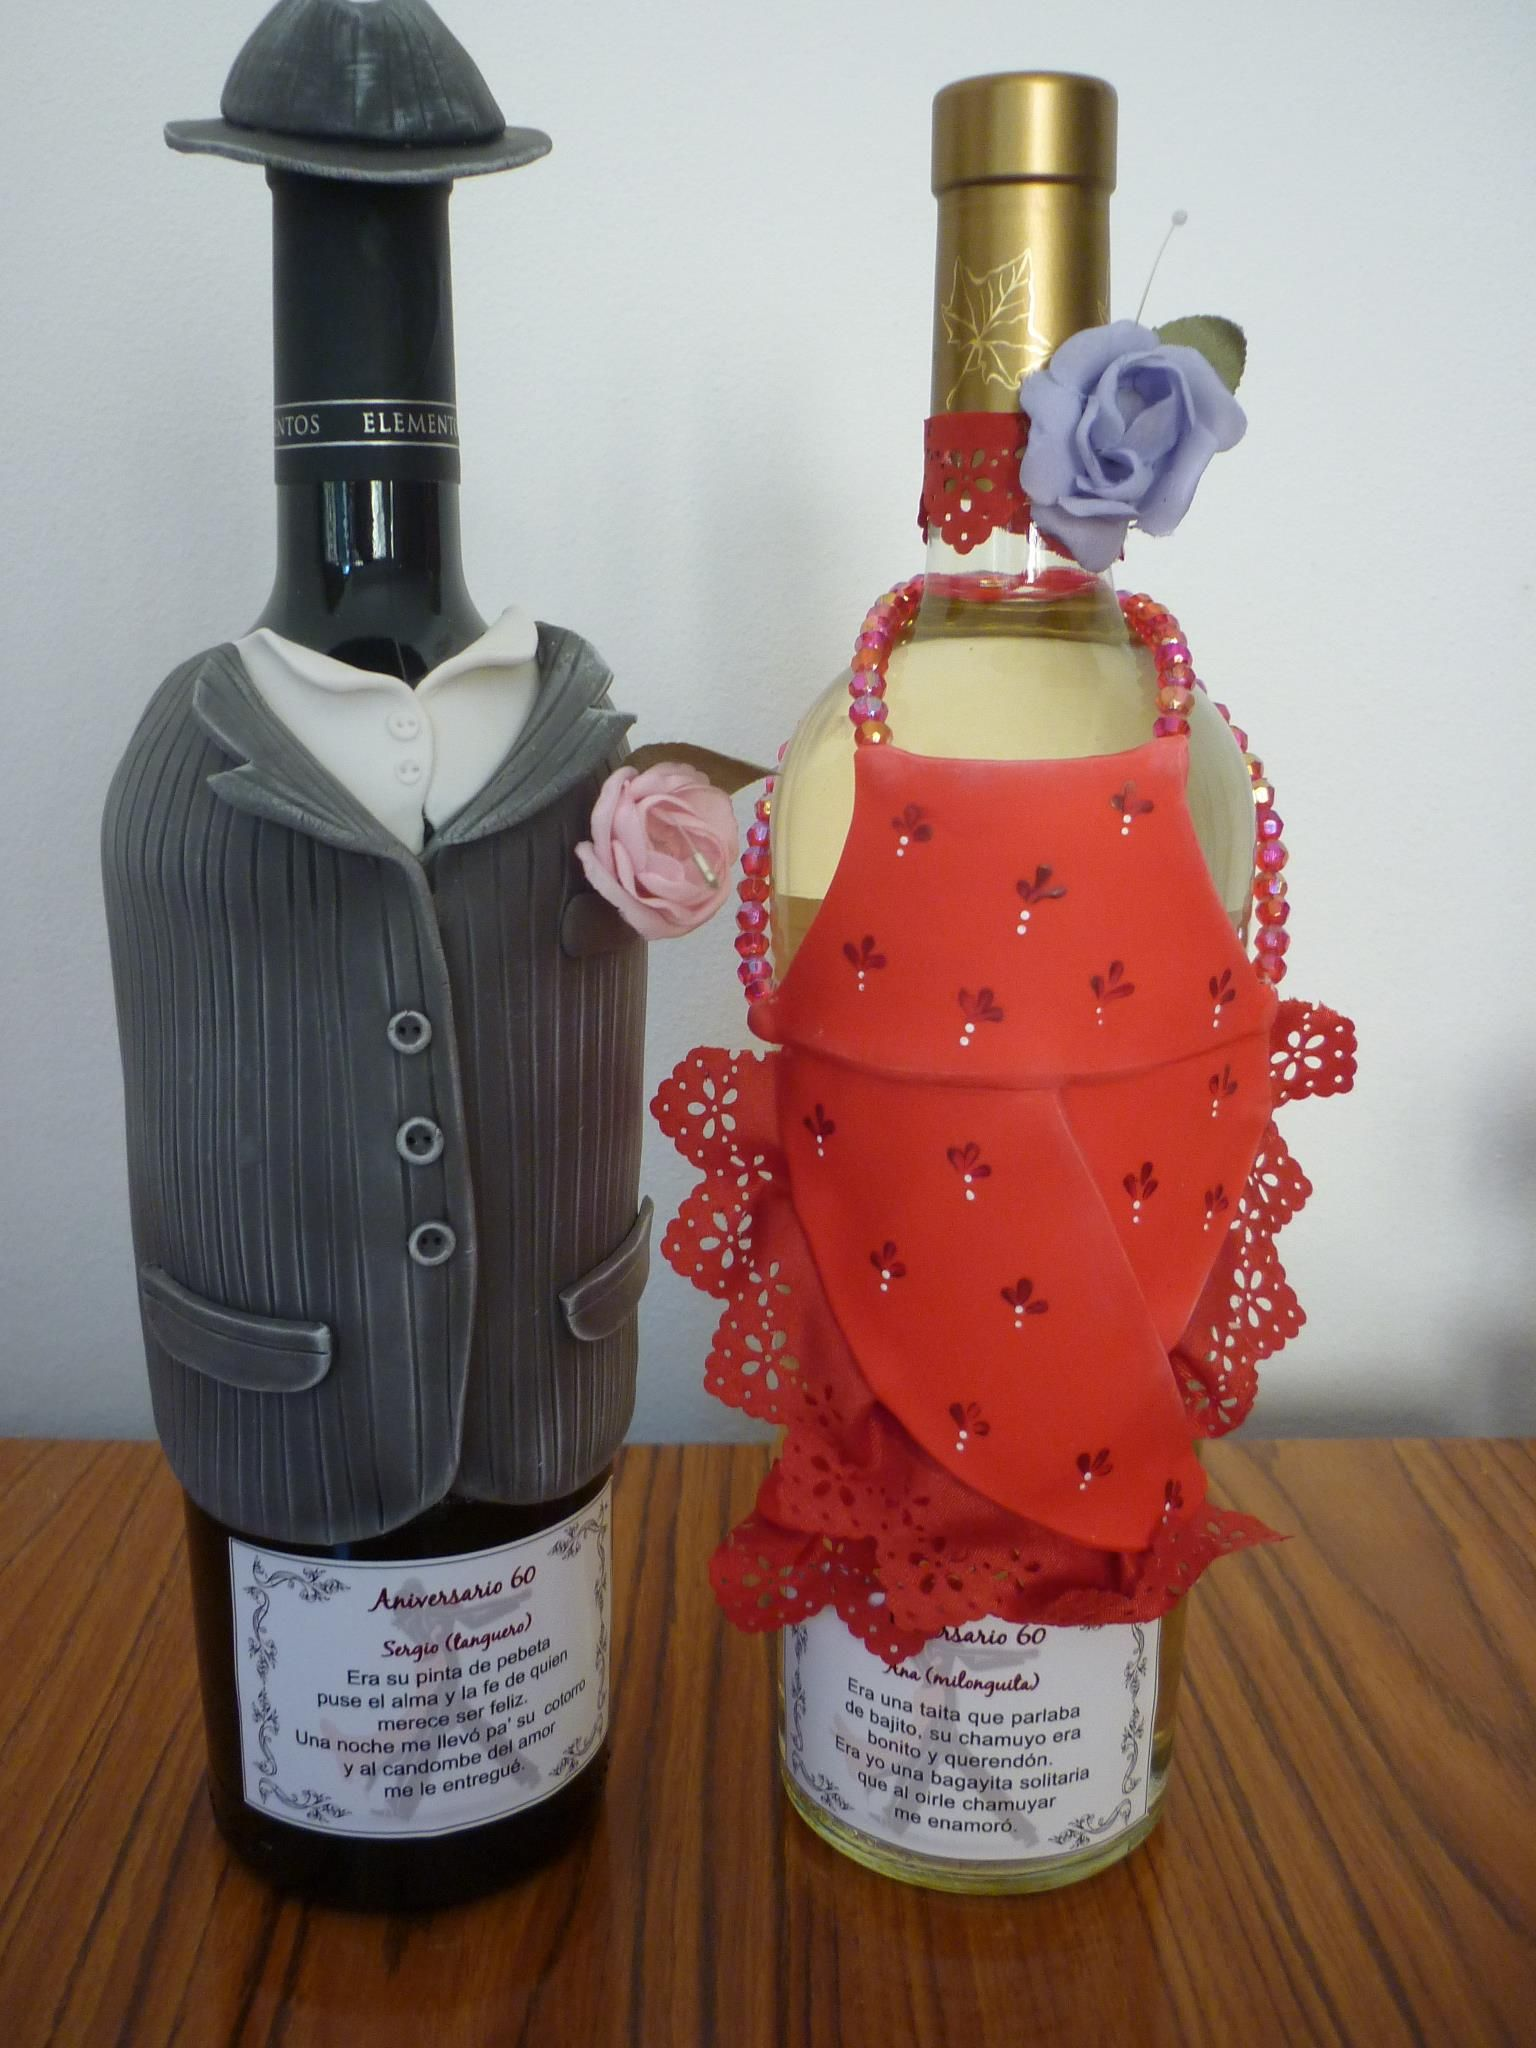 Pin By Nati Nati On Clay Polymer Salt Baking Soda Etc Recycled Jars Clay Jar Altered Bottles